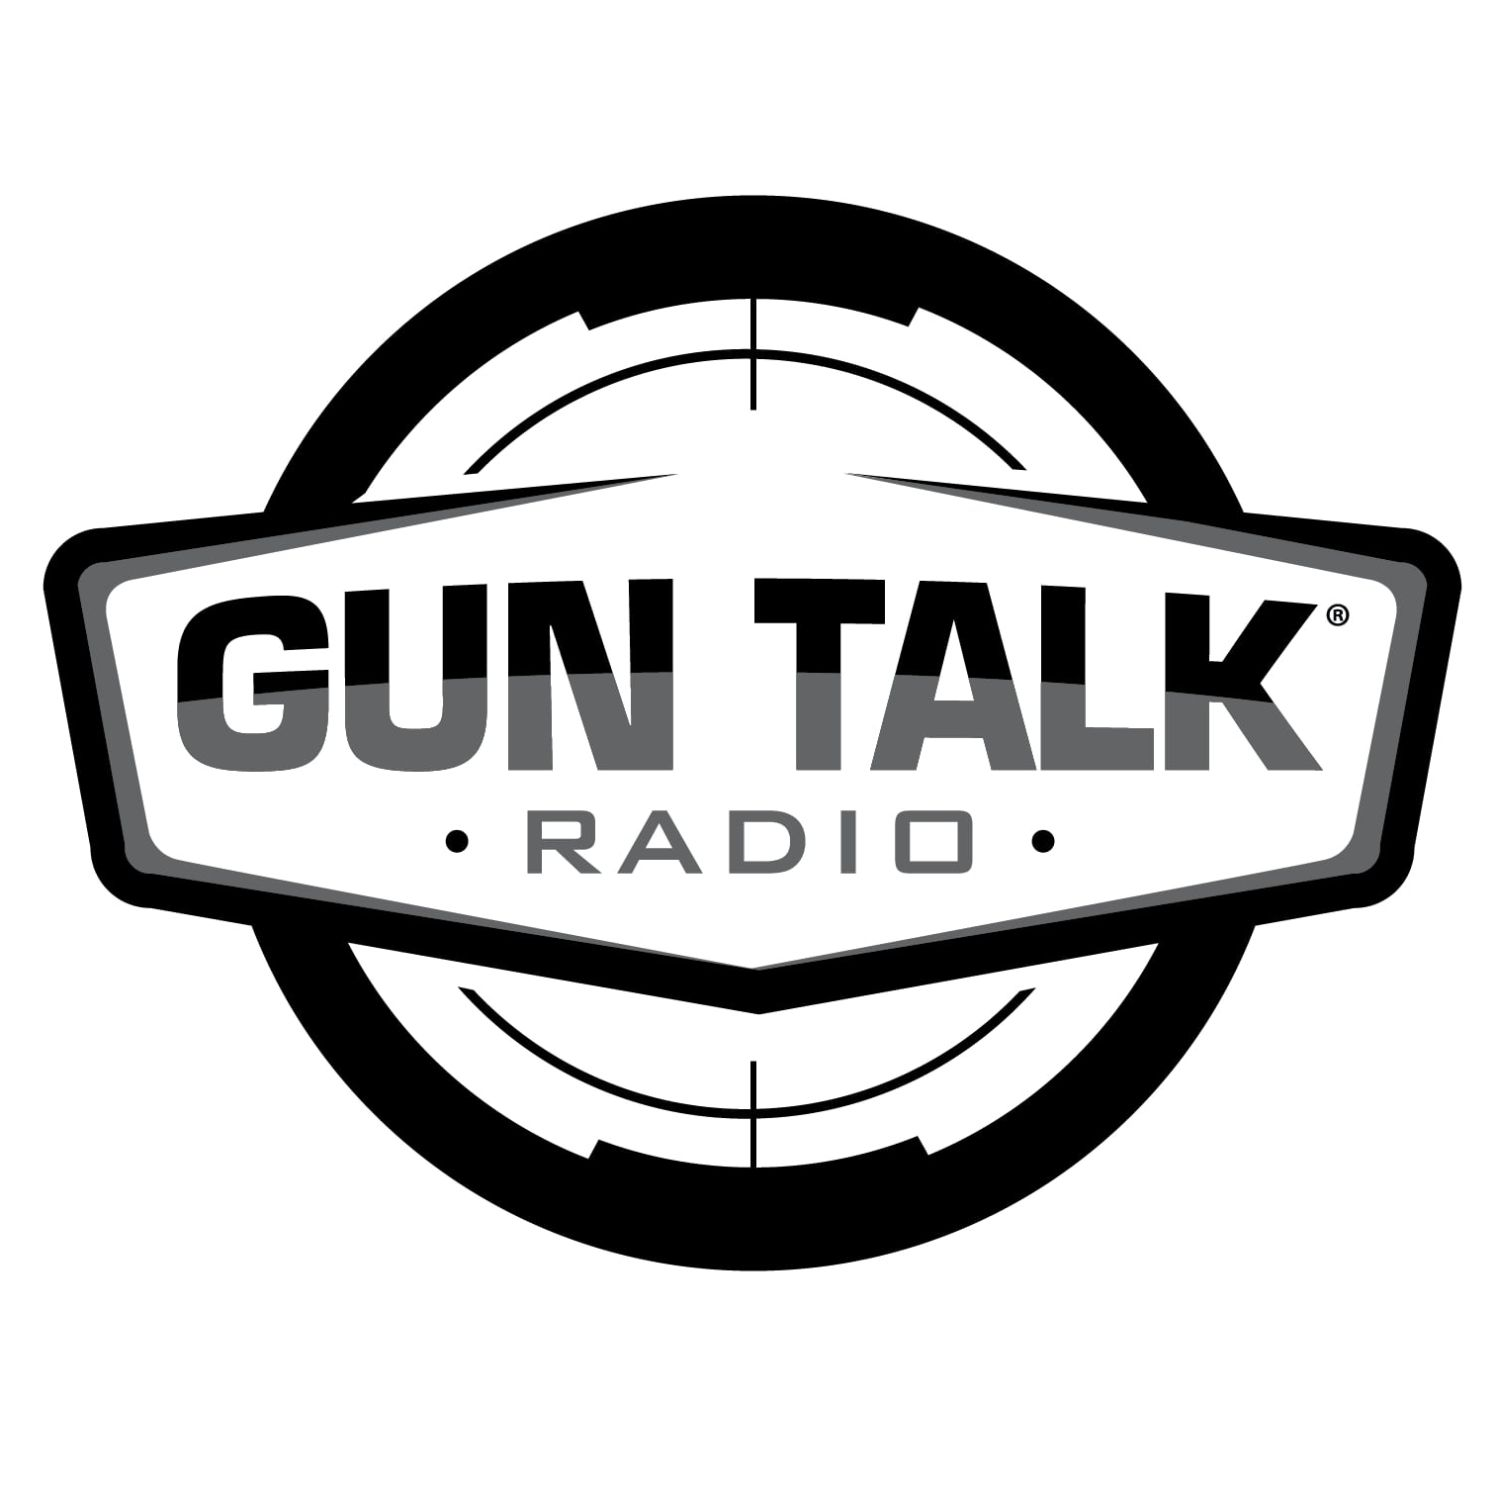 Artwork for Guntalk 2006-12-24 Part A